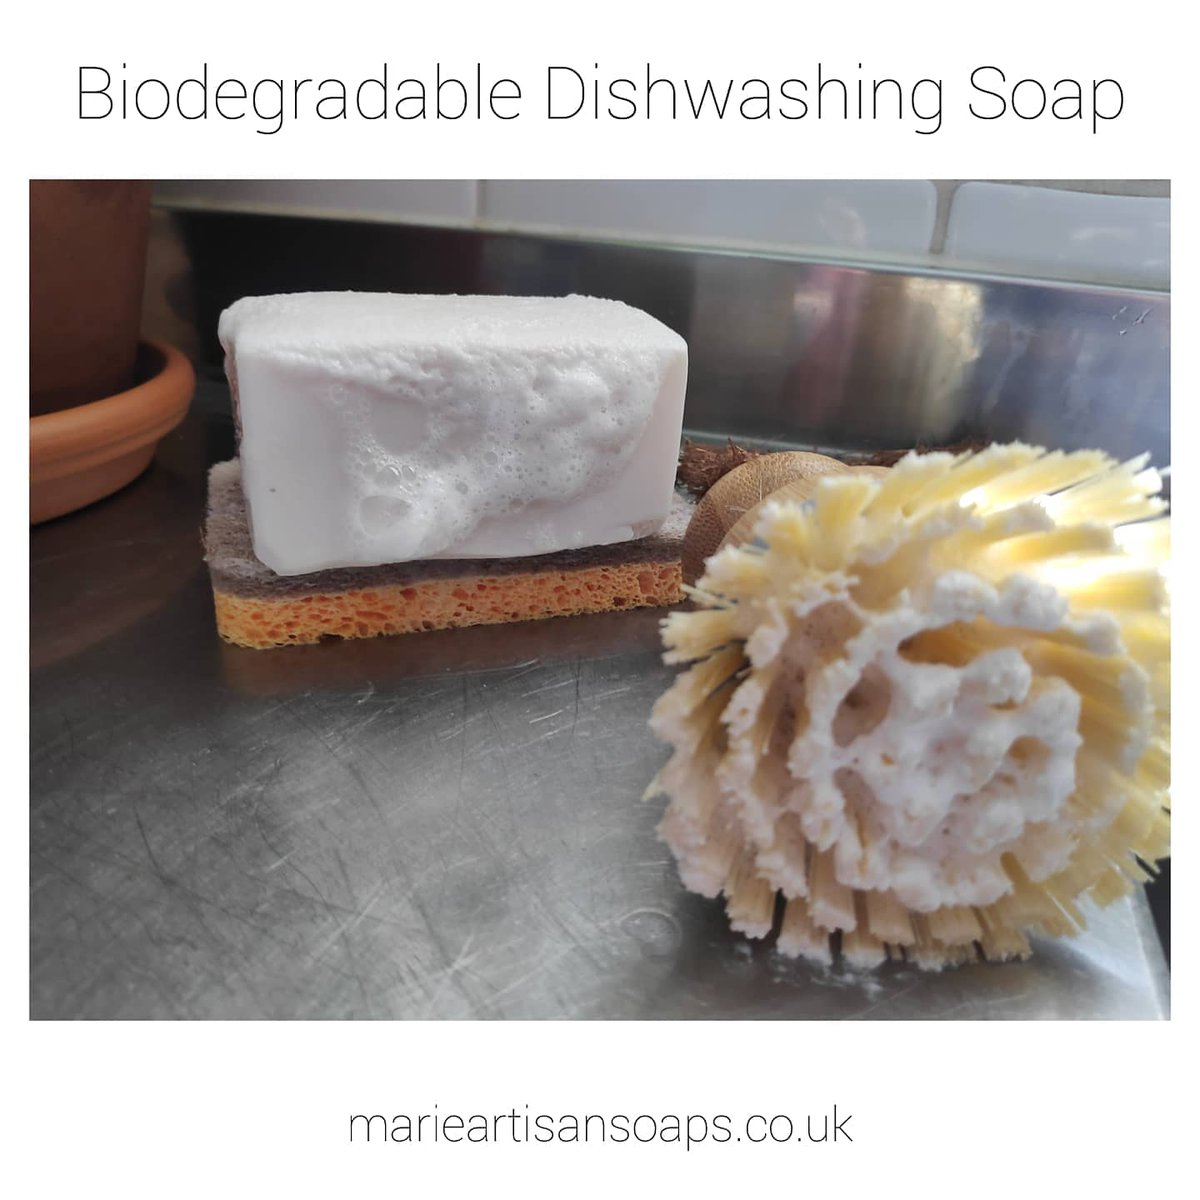 So looking forward to launching this baby! Please bare with me. #ecoblockdishsoap  #biodegradable #kitchen #soap pic.twitter.com/7BH2OcLlJf